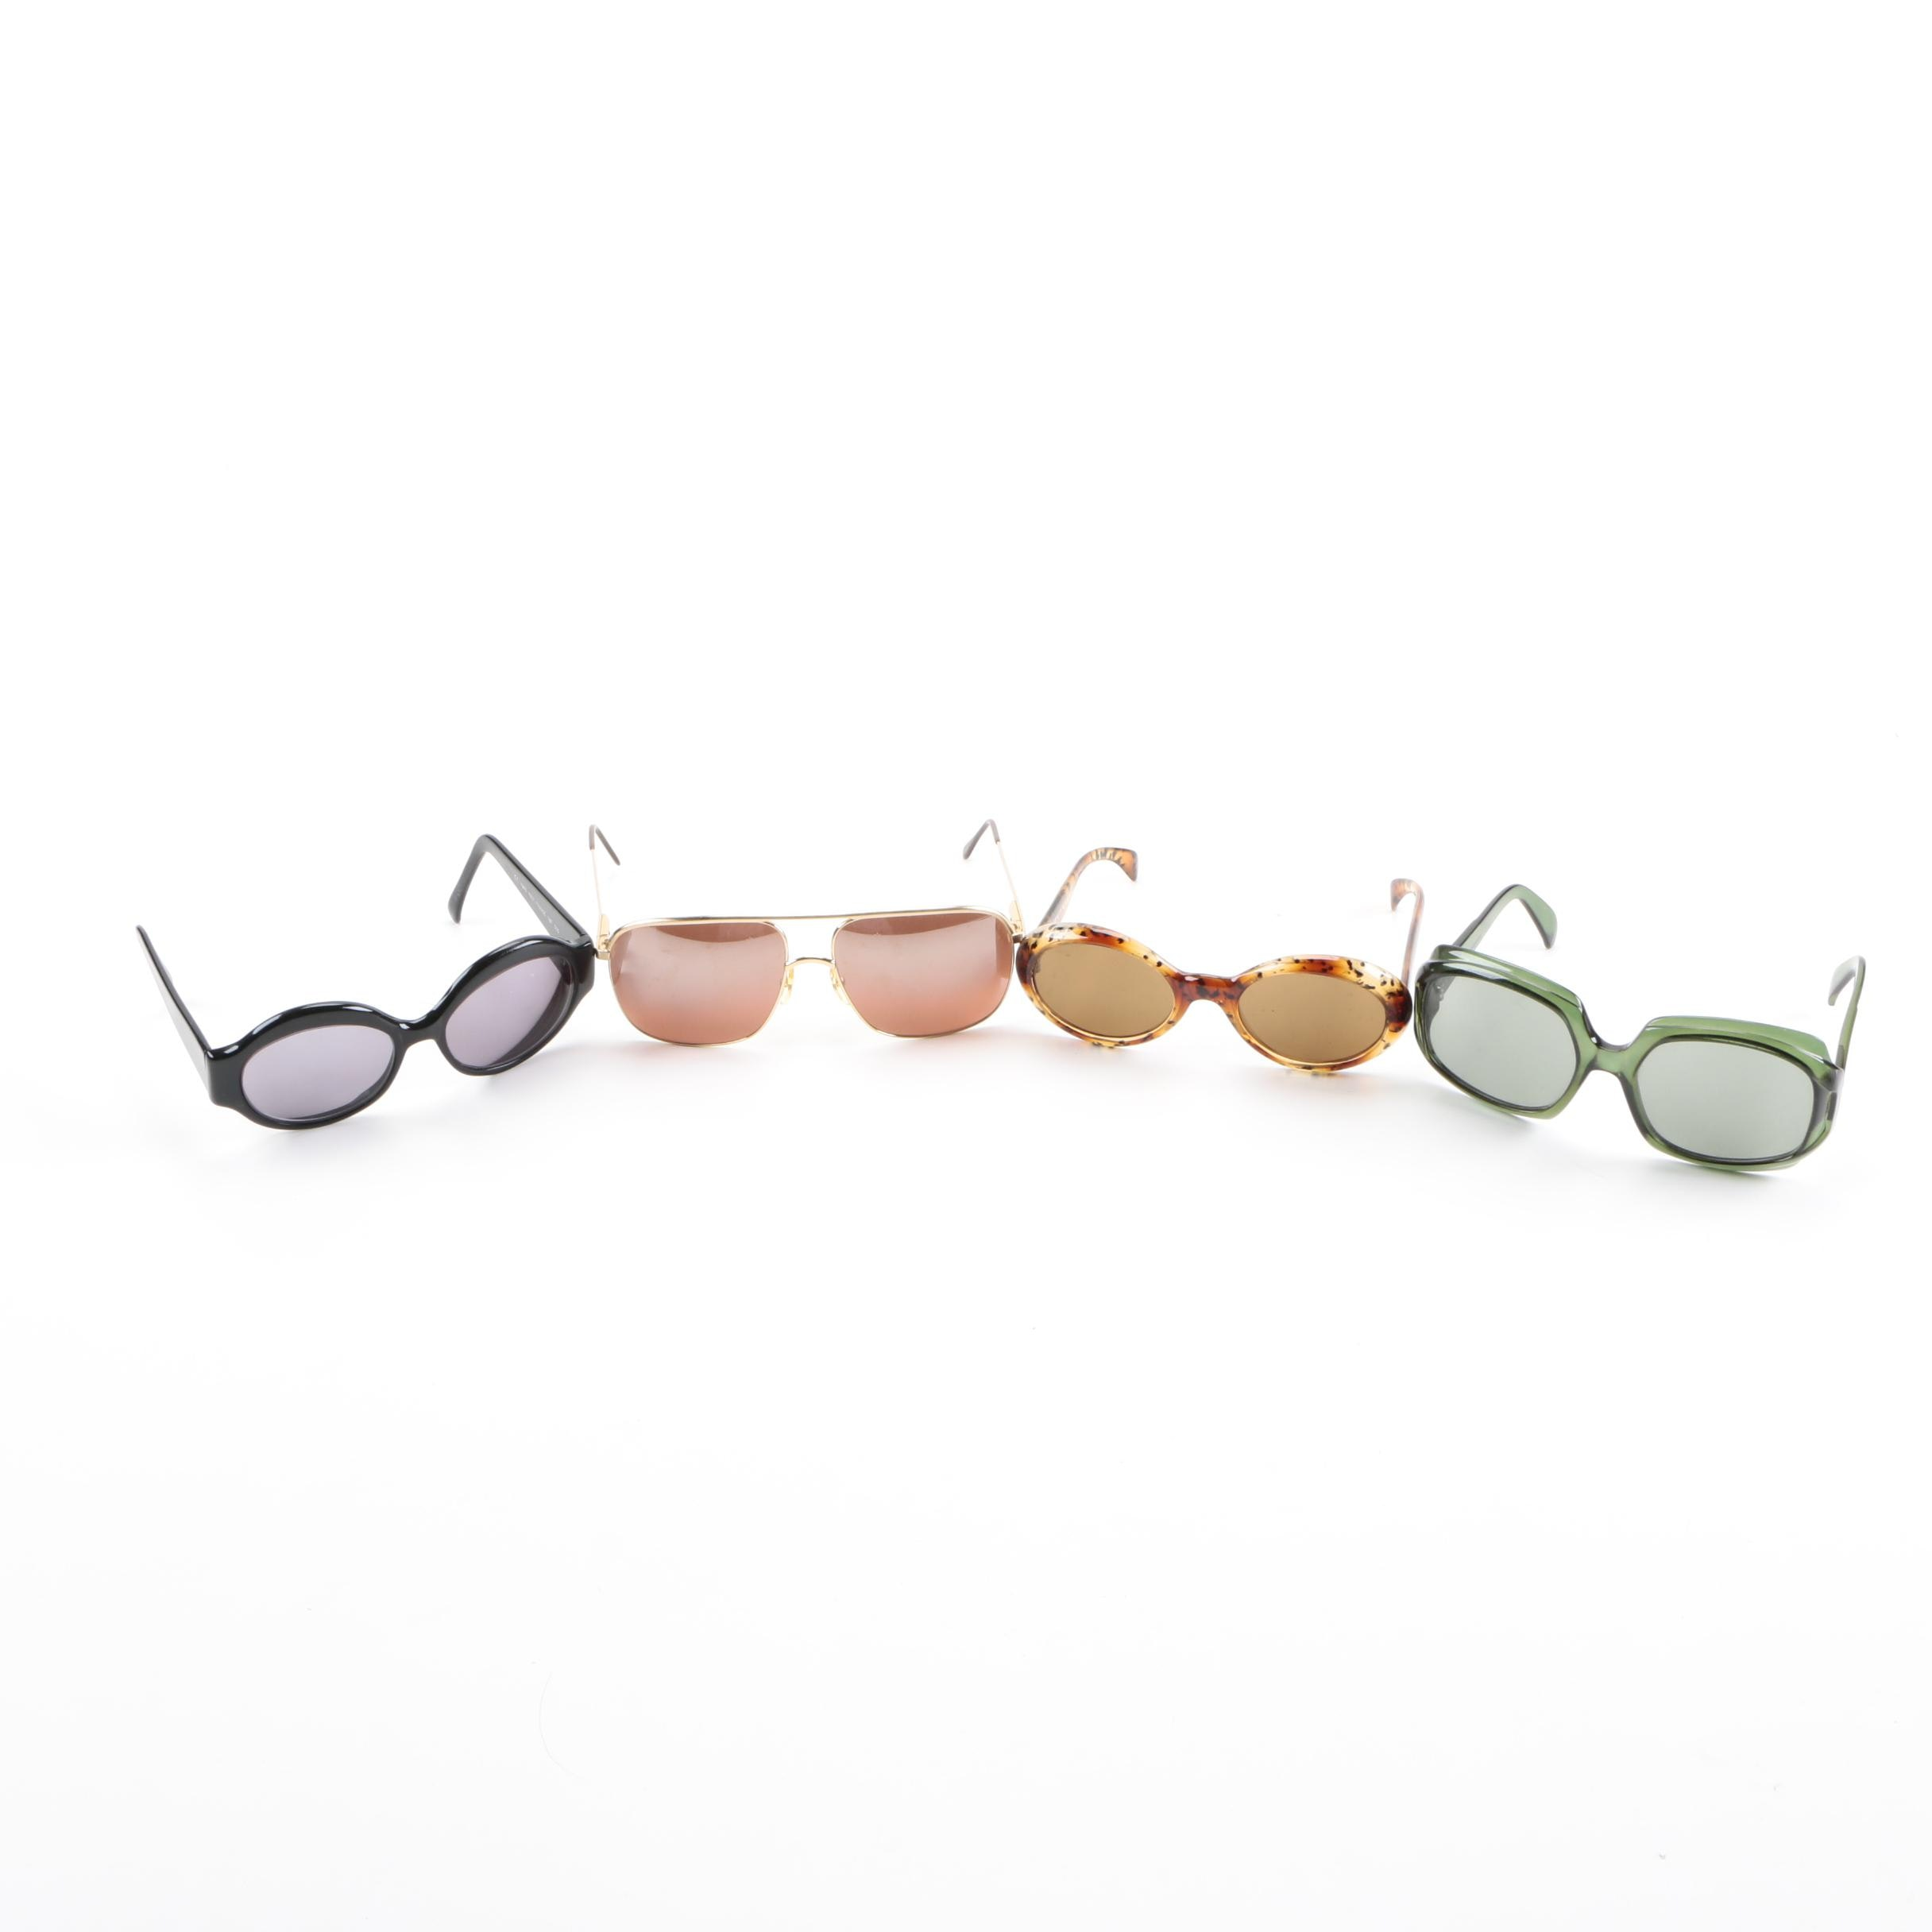 Vintage Sunglasses Including Ray-Ban